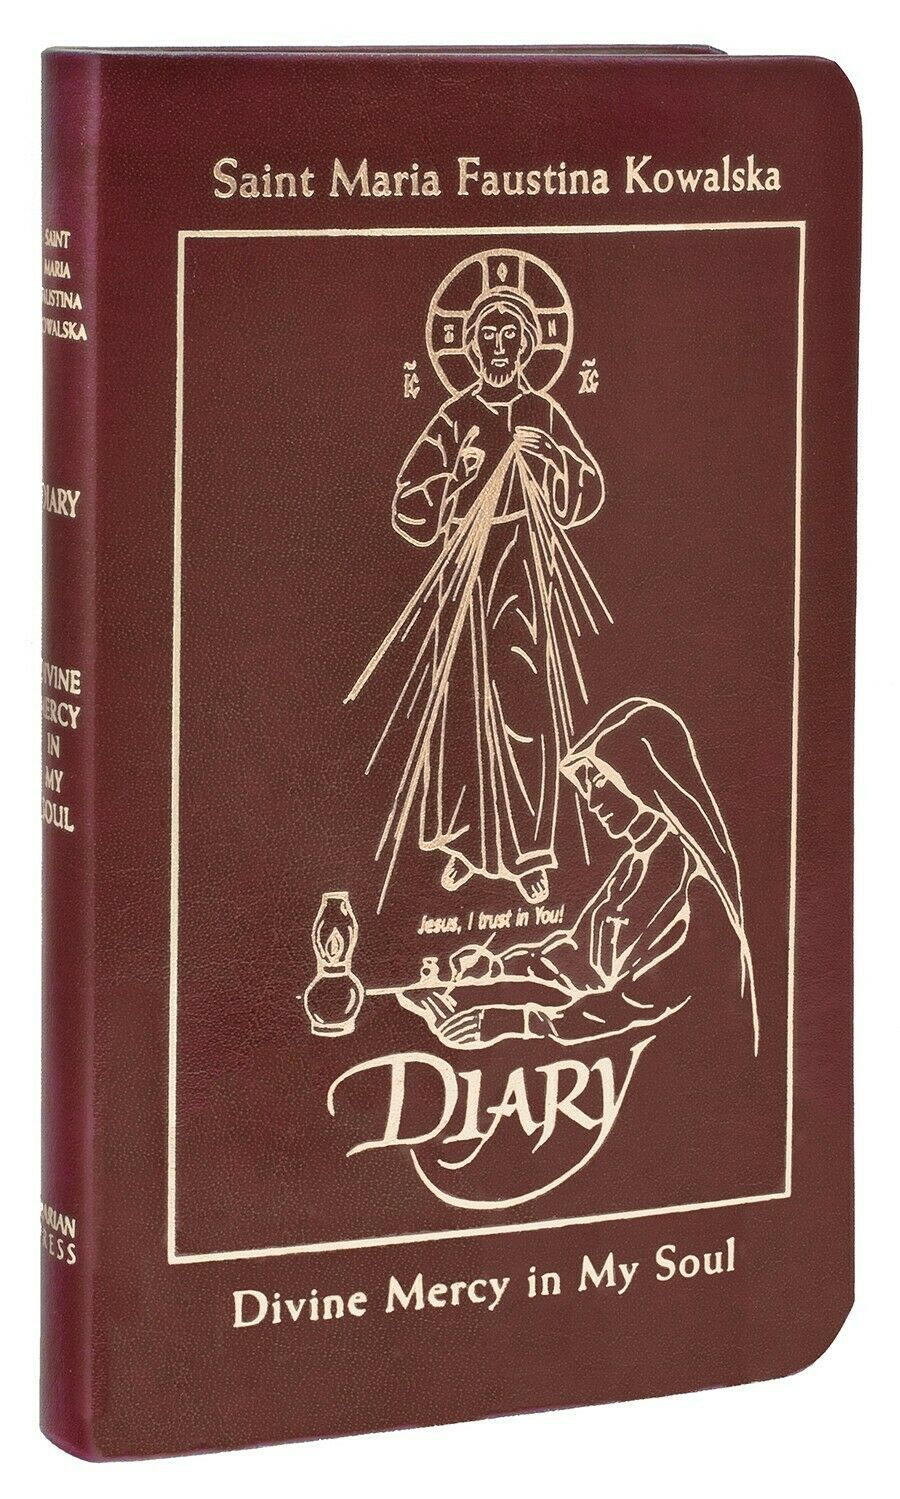 Diary of Saint Maria Faustina Kowalska Divine Mercy in My Soul (Leather-English)